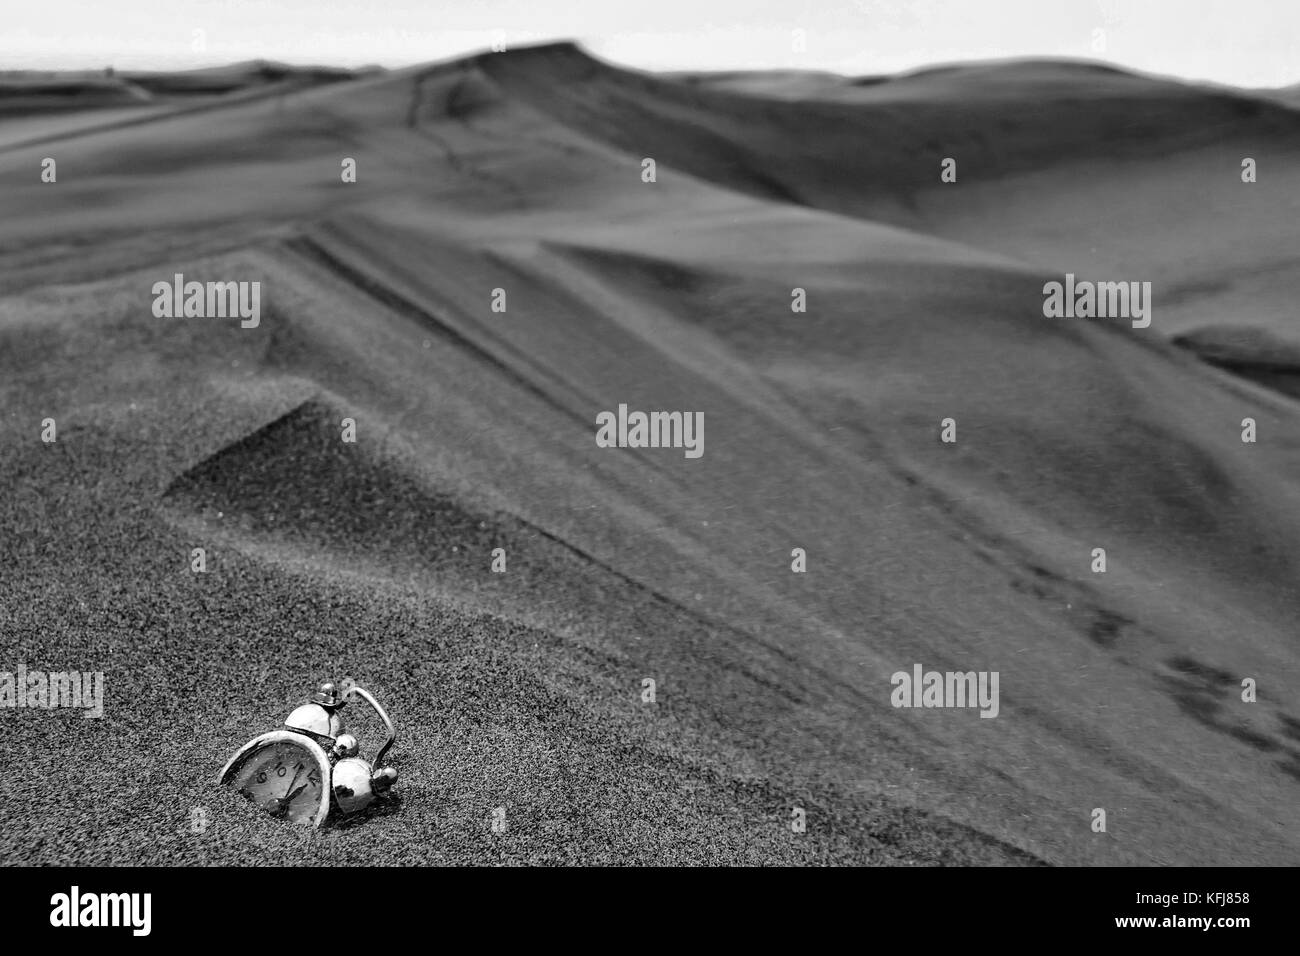 an abstract consept shot of a clock sinking in sand sorrounded by desert dunes meaning the passing of time Stock Photo